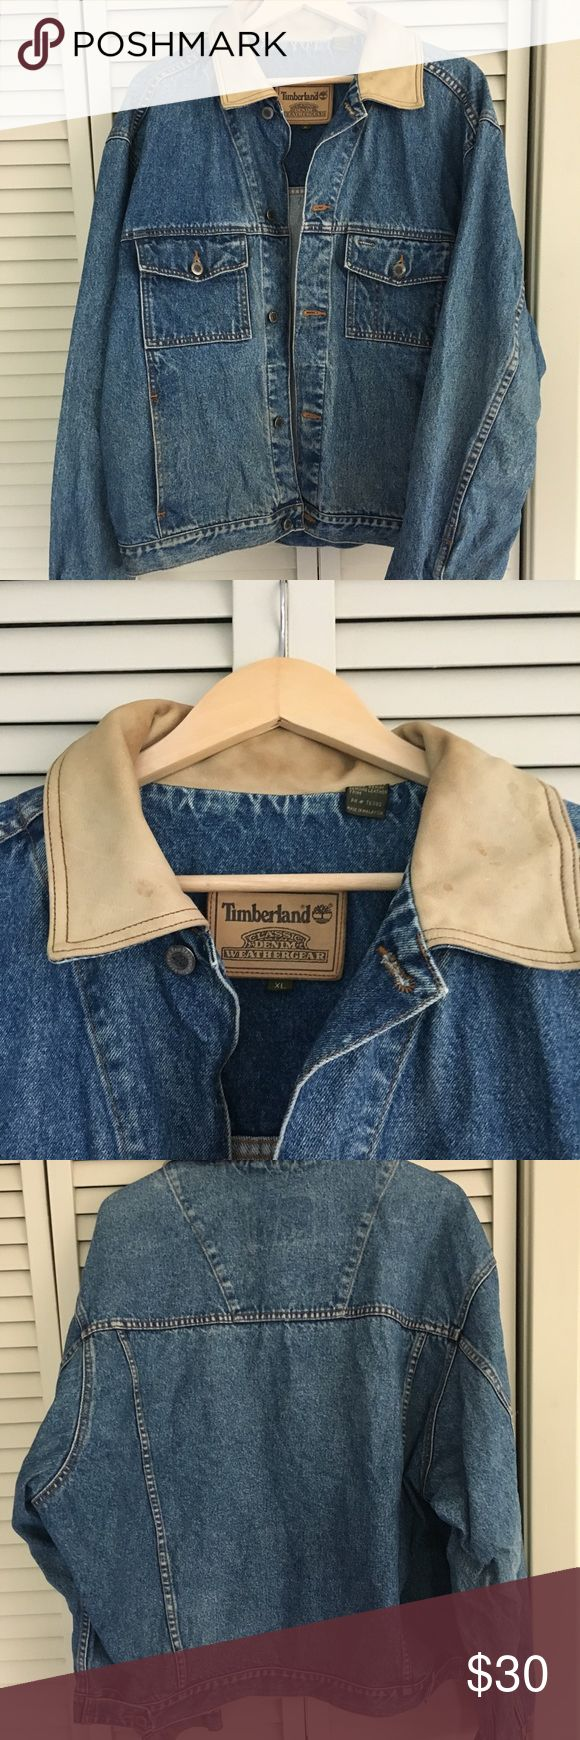 Men's timberland denim jacket Great vintage denim piece. Leather collar with small stains and minimal wear as seen in pic 2. Timberland Jackets & Coats Lightweight & Shirt Jackets